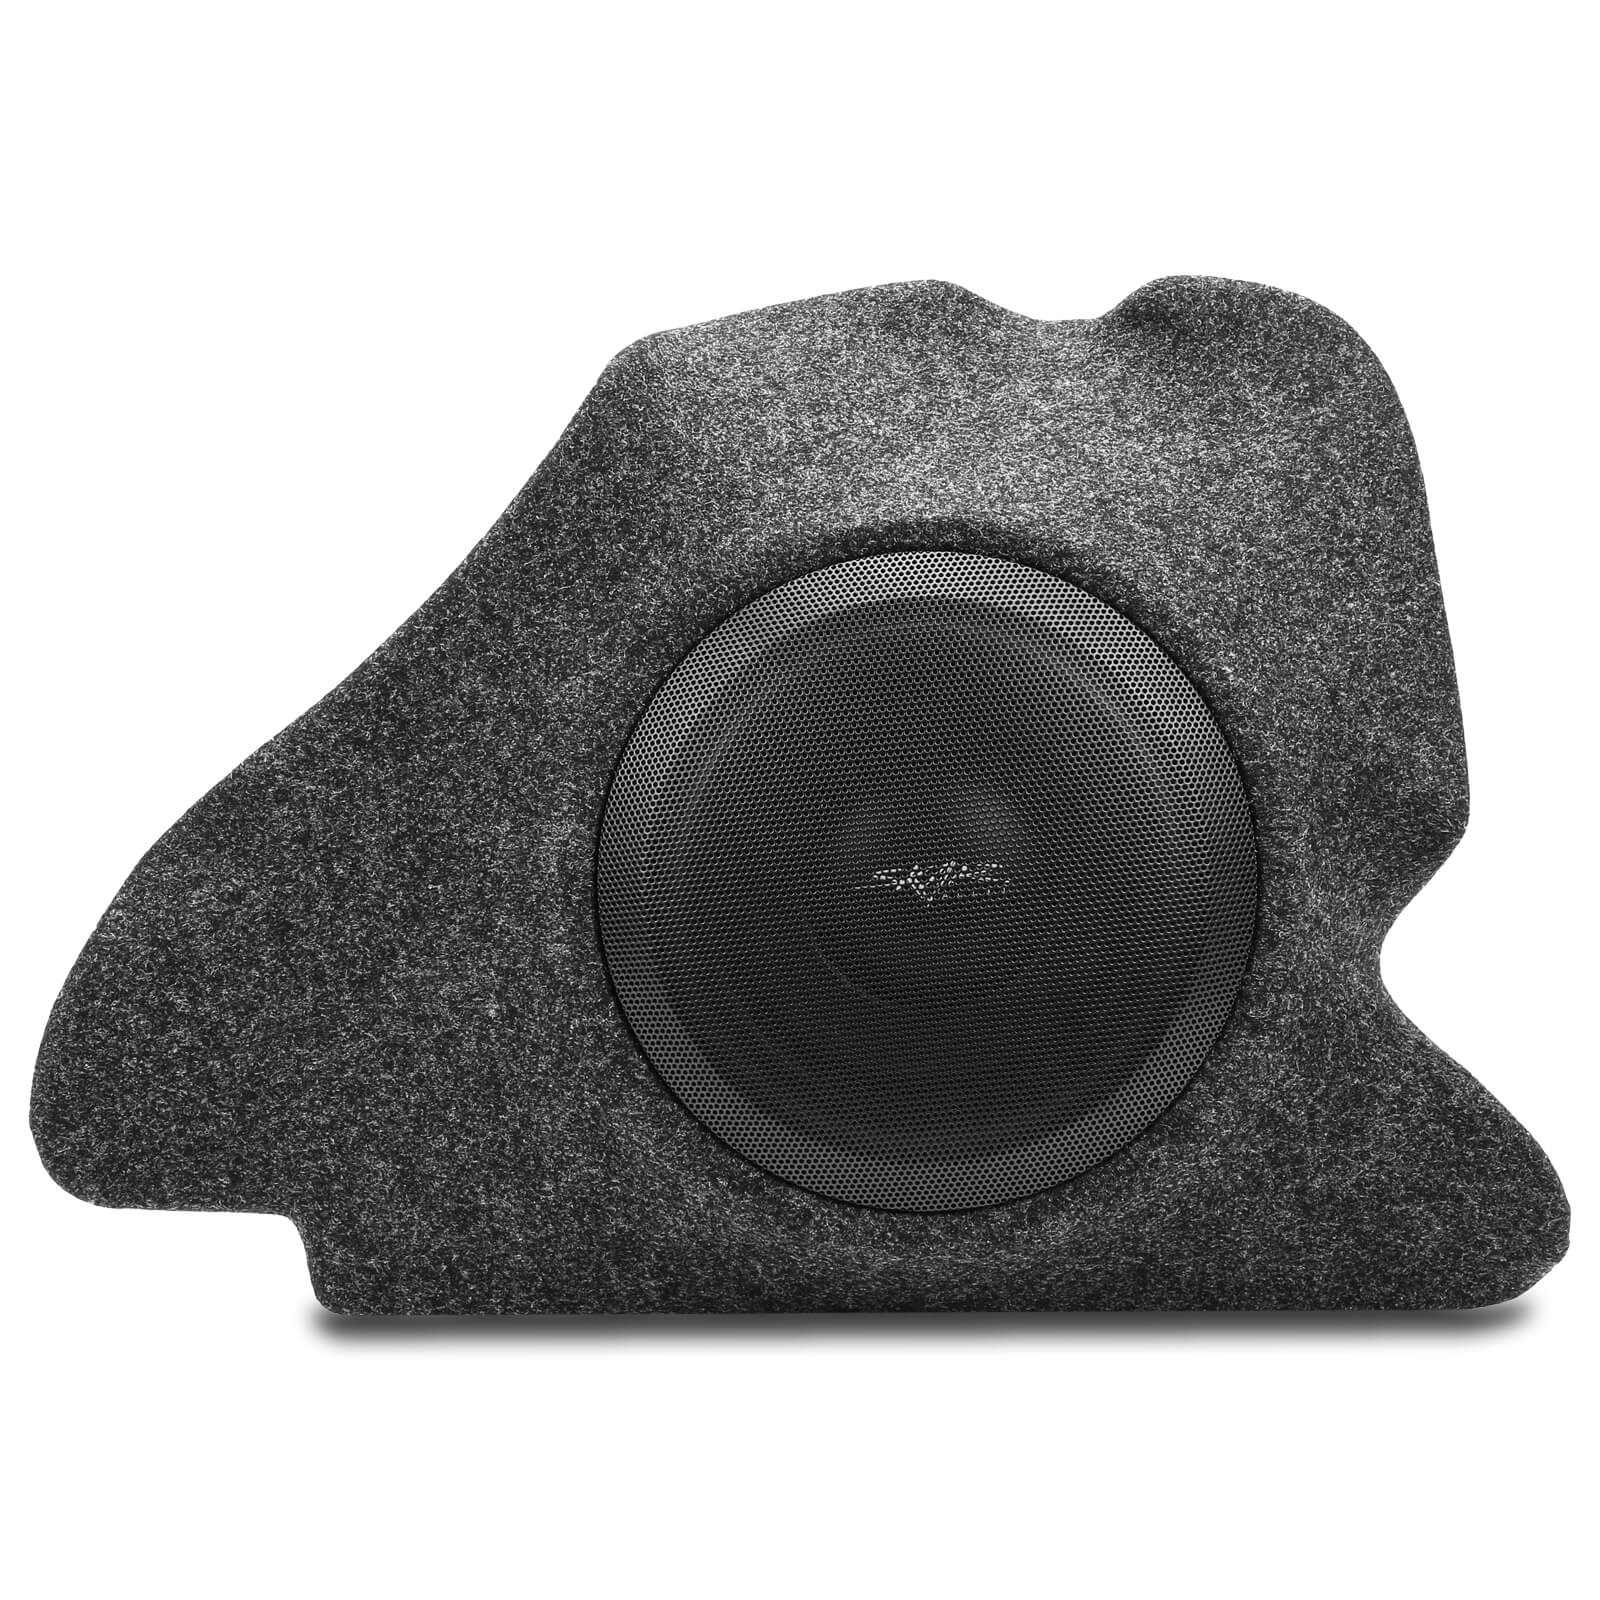 "Skar Audio Single 10"" Loaded Subwoofer Enclosure - Fits 2015-2020 Dodge Charger"